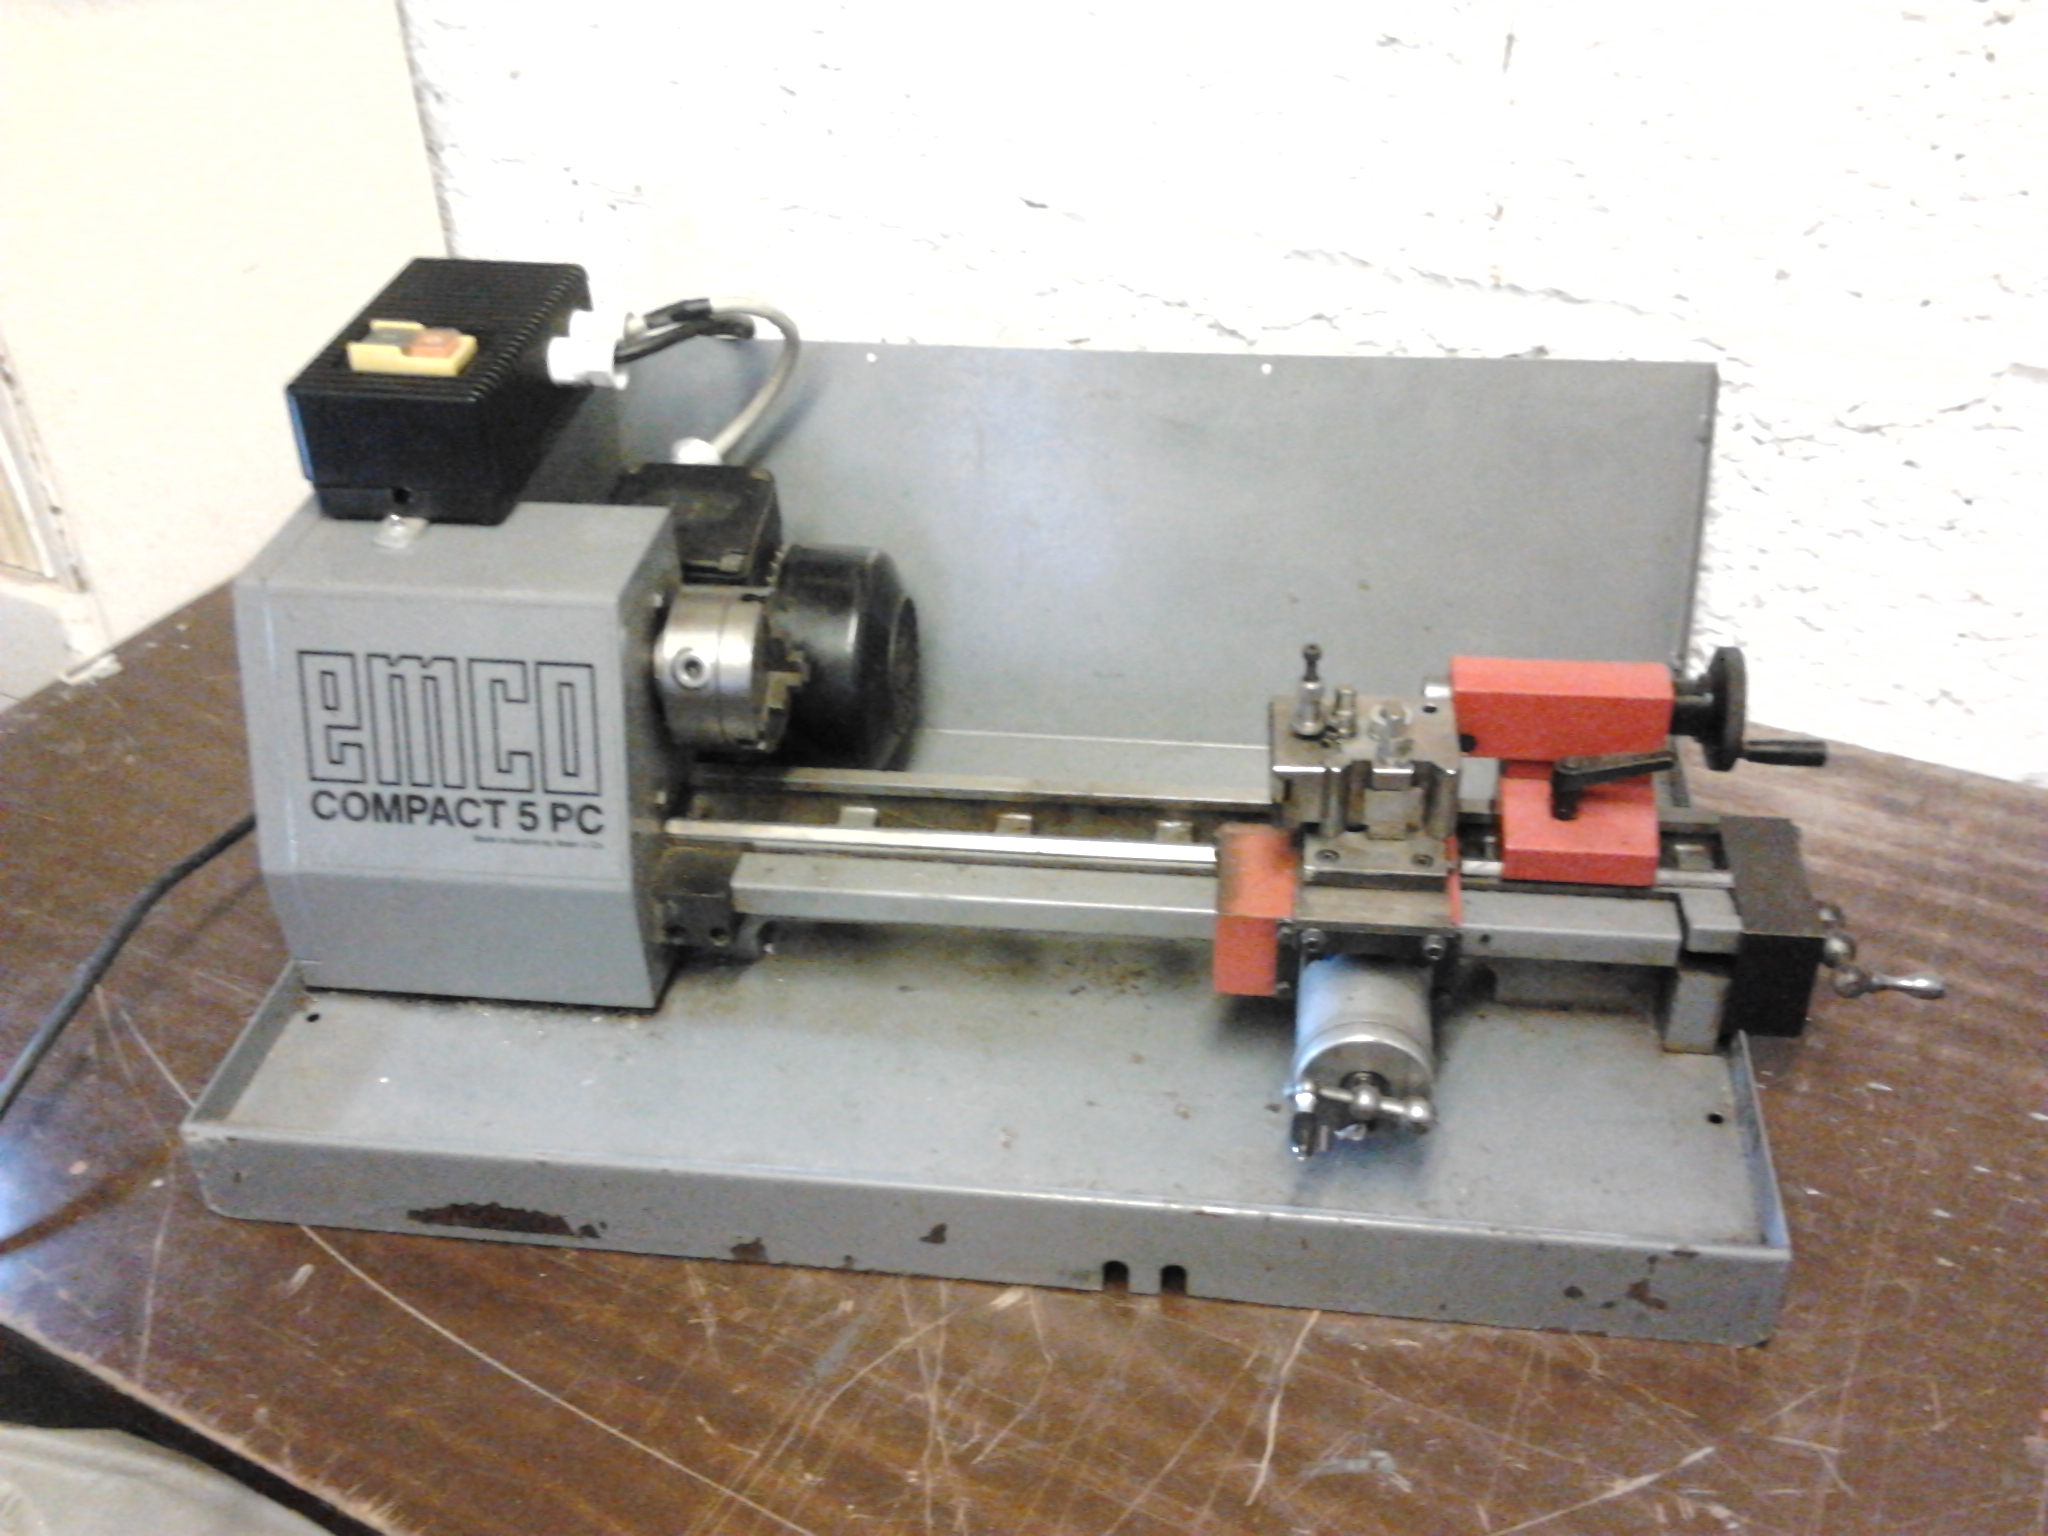 hight resolution of downsizing a broken emco compact 5 pc lathe to manual operation emco compact 5 cnc electrical wiring diagram